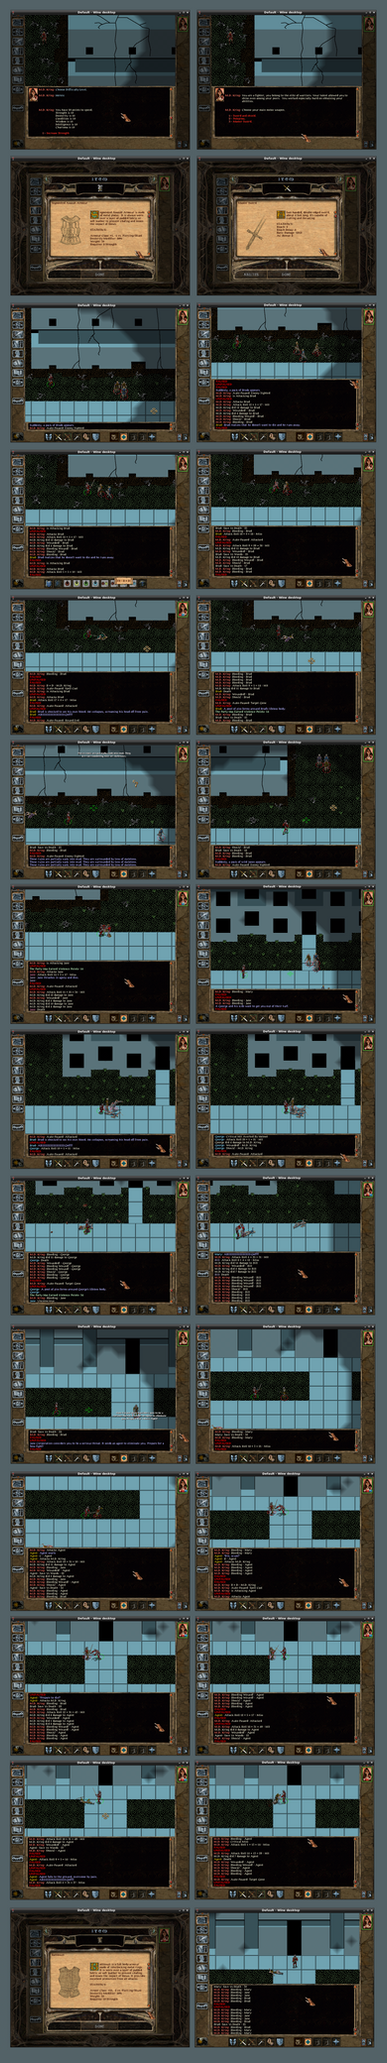 Urban Wasteland Screenshot 001 by ForgottenDemigod